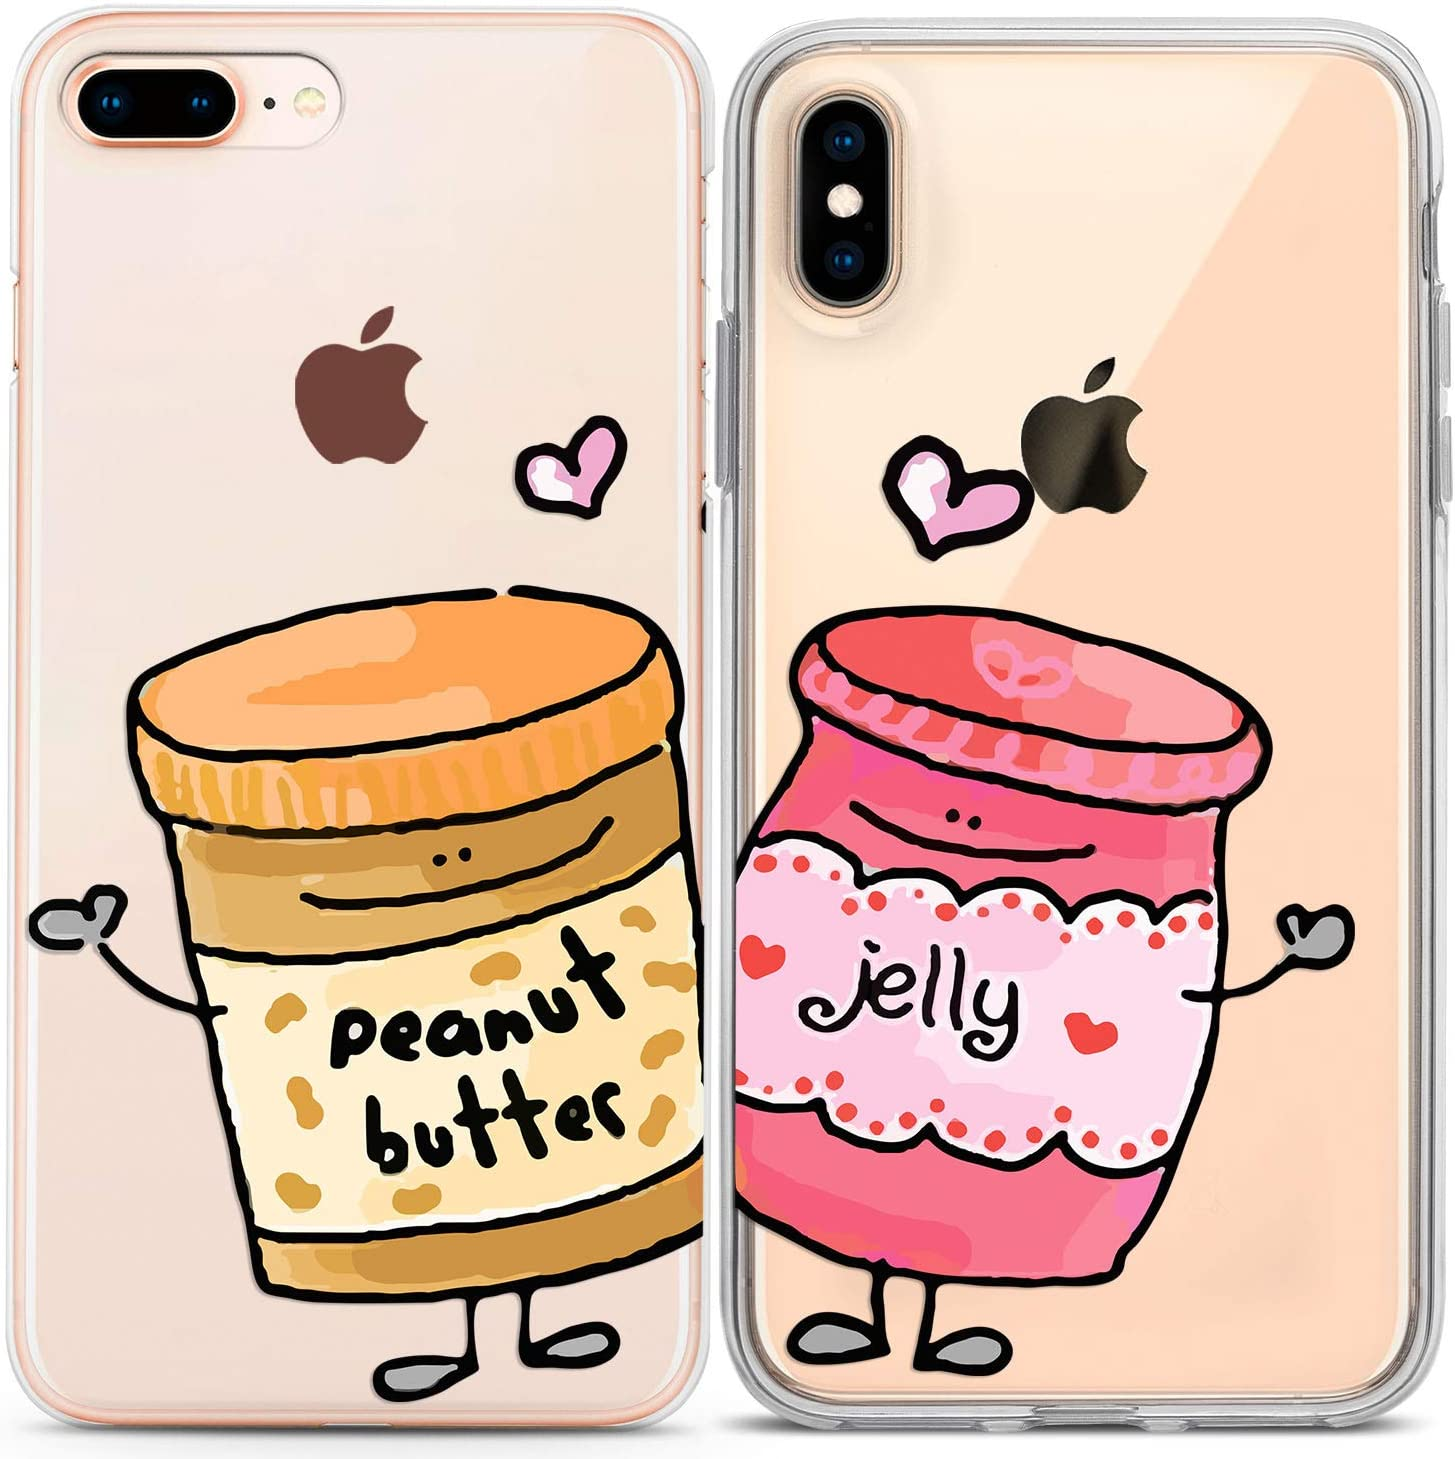 Lex Altern Couple Cases Compatible with iPhone 12 Pro Max 11 Mini SE Xr Xs 8 Plus 7 6 Protective Kawaii Peanut Butter Matching Cover Cute Best Friend Jelly Soulmate Lightweight Flexible Food Bread